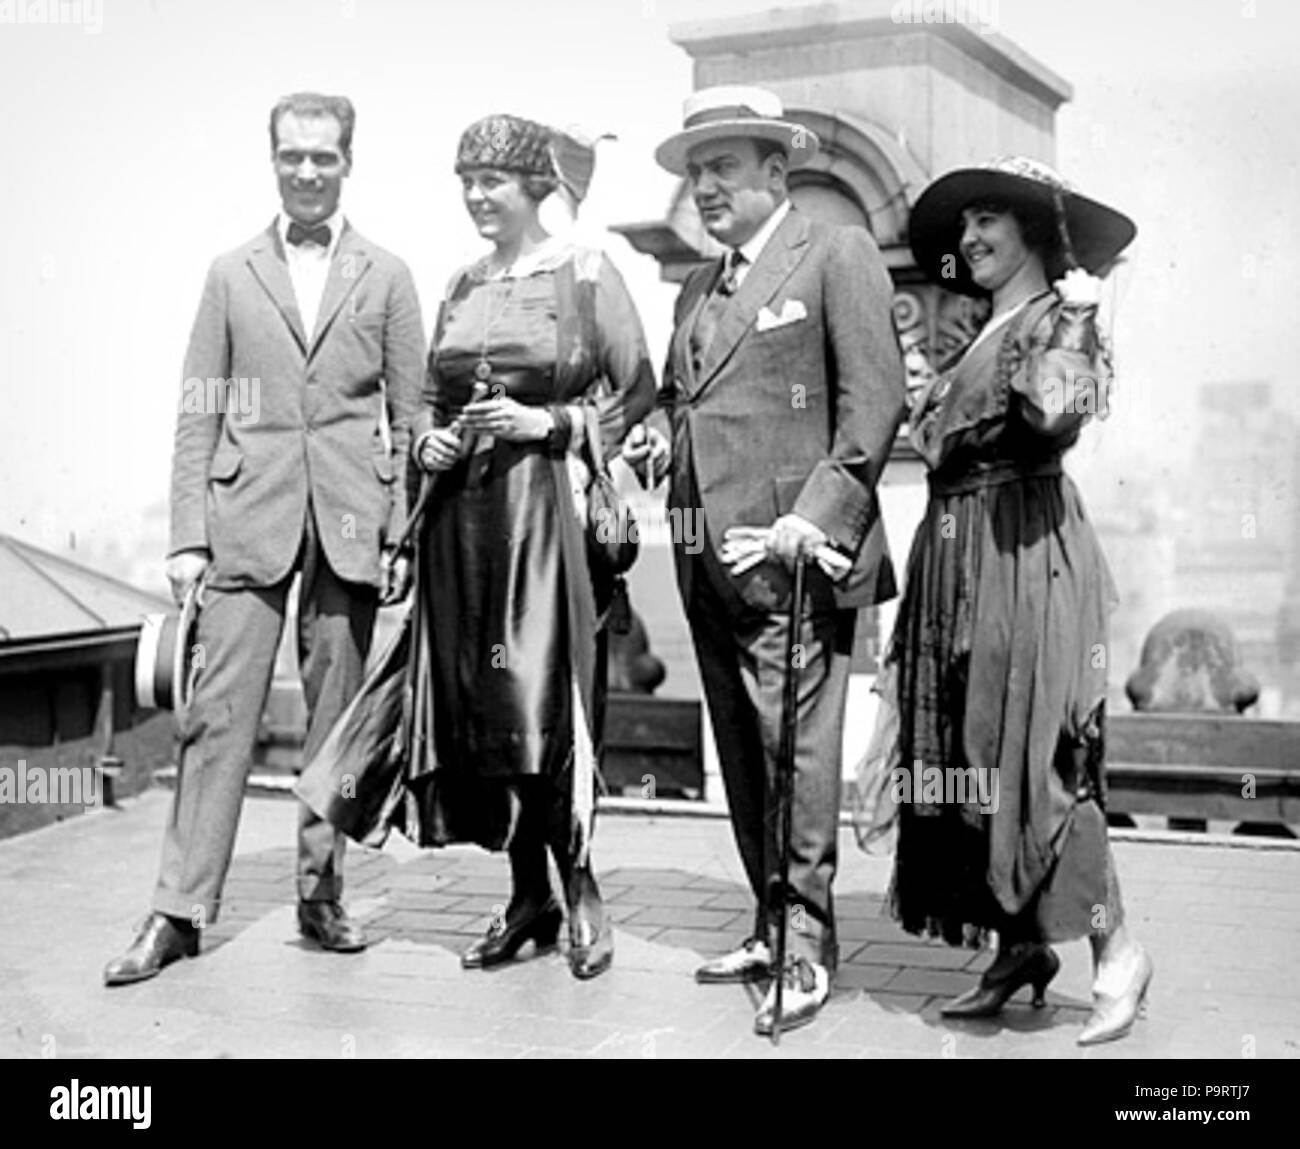 284 Caruso's wedding party on the roof of the Knickerbocker Hotel (New York), August 20, 1918. Left to right Bruno Zirato (Caruso's personal assistant), Dorothy Caruso, Enrico Caruso, Mrs. J. S. Keith Stock Photo